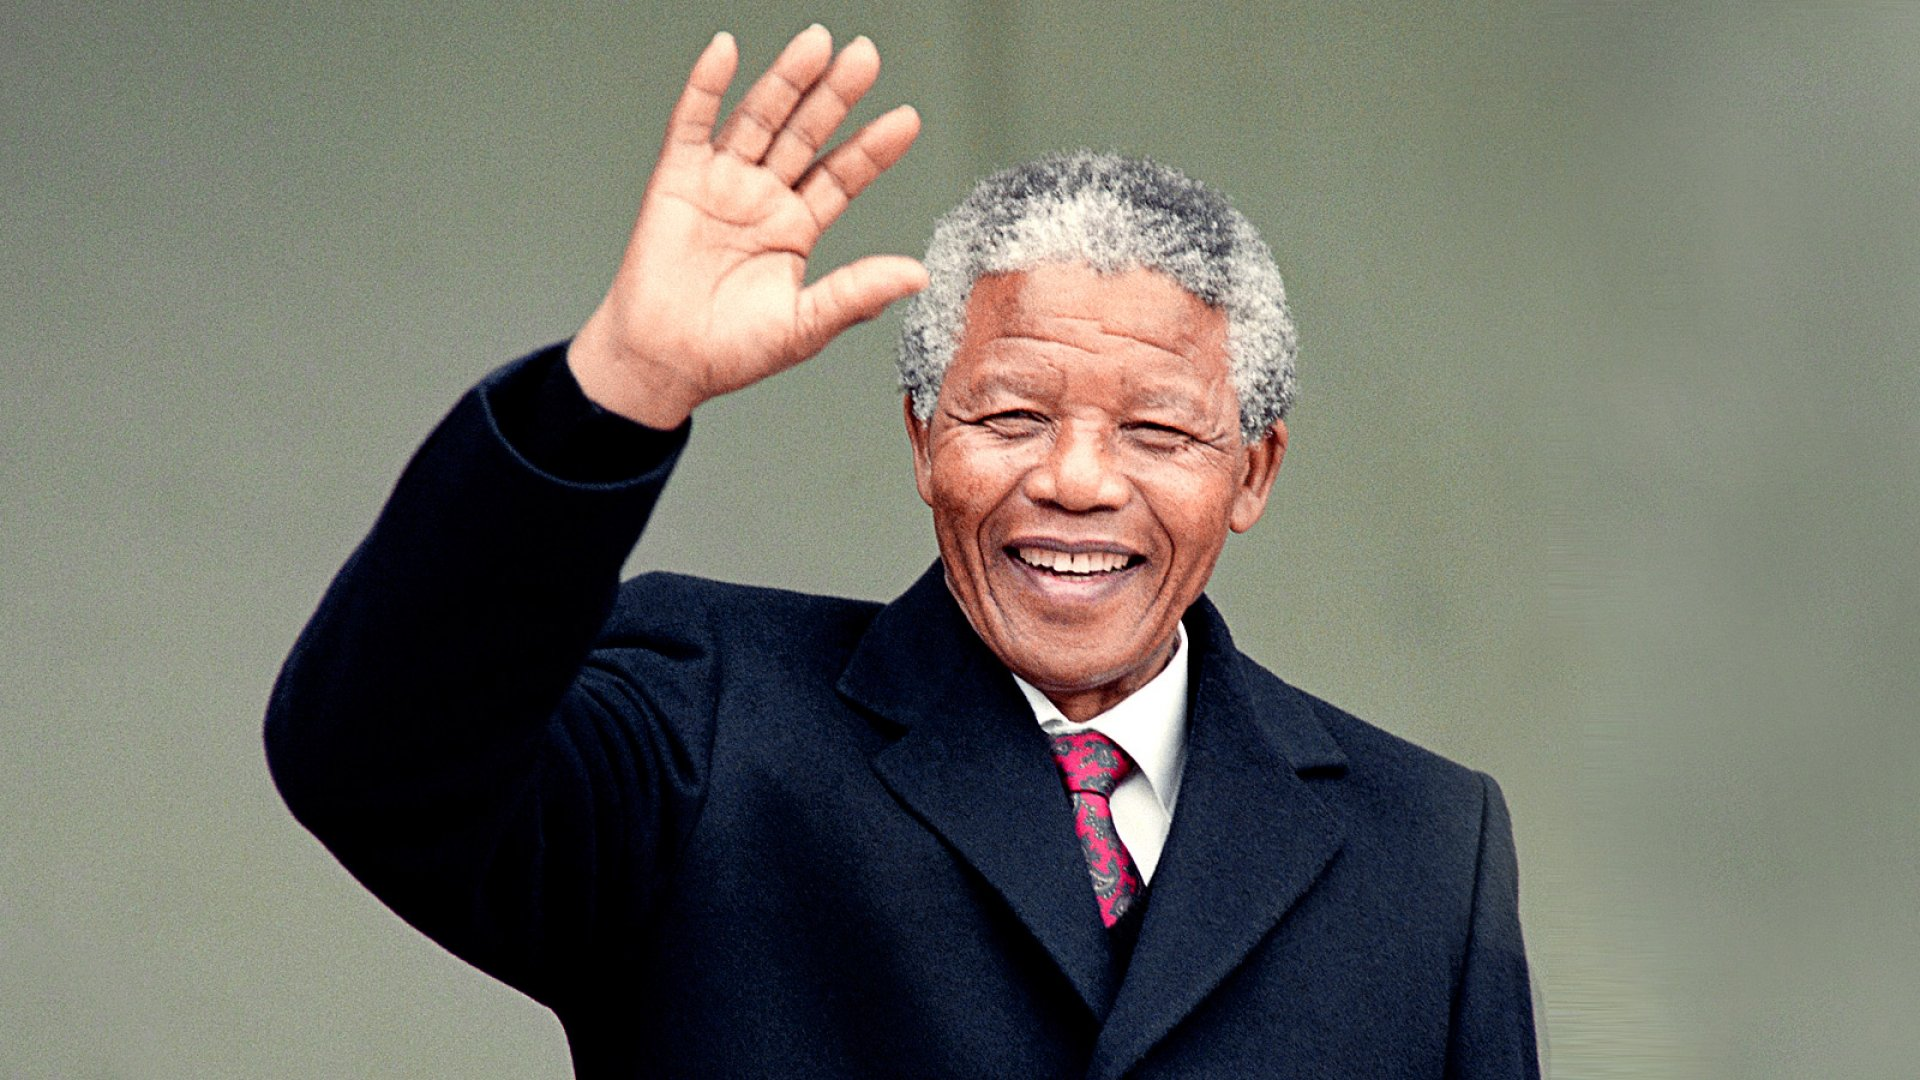 Nelson Mandela, Transformational Leader